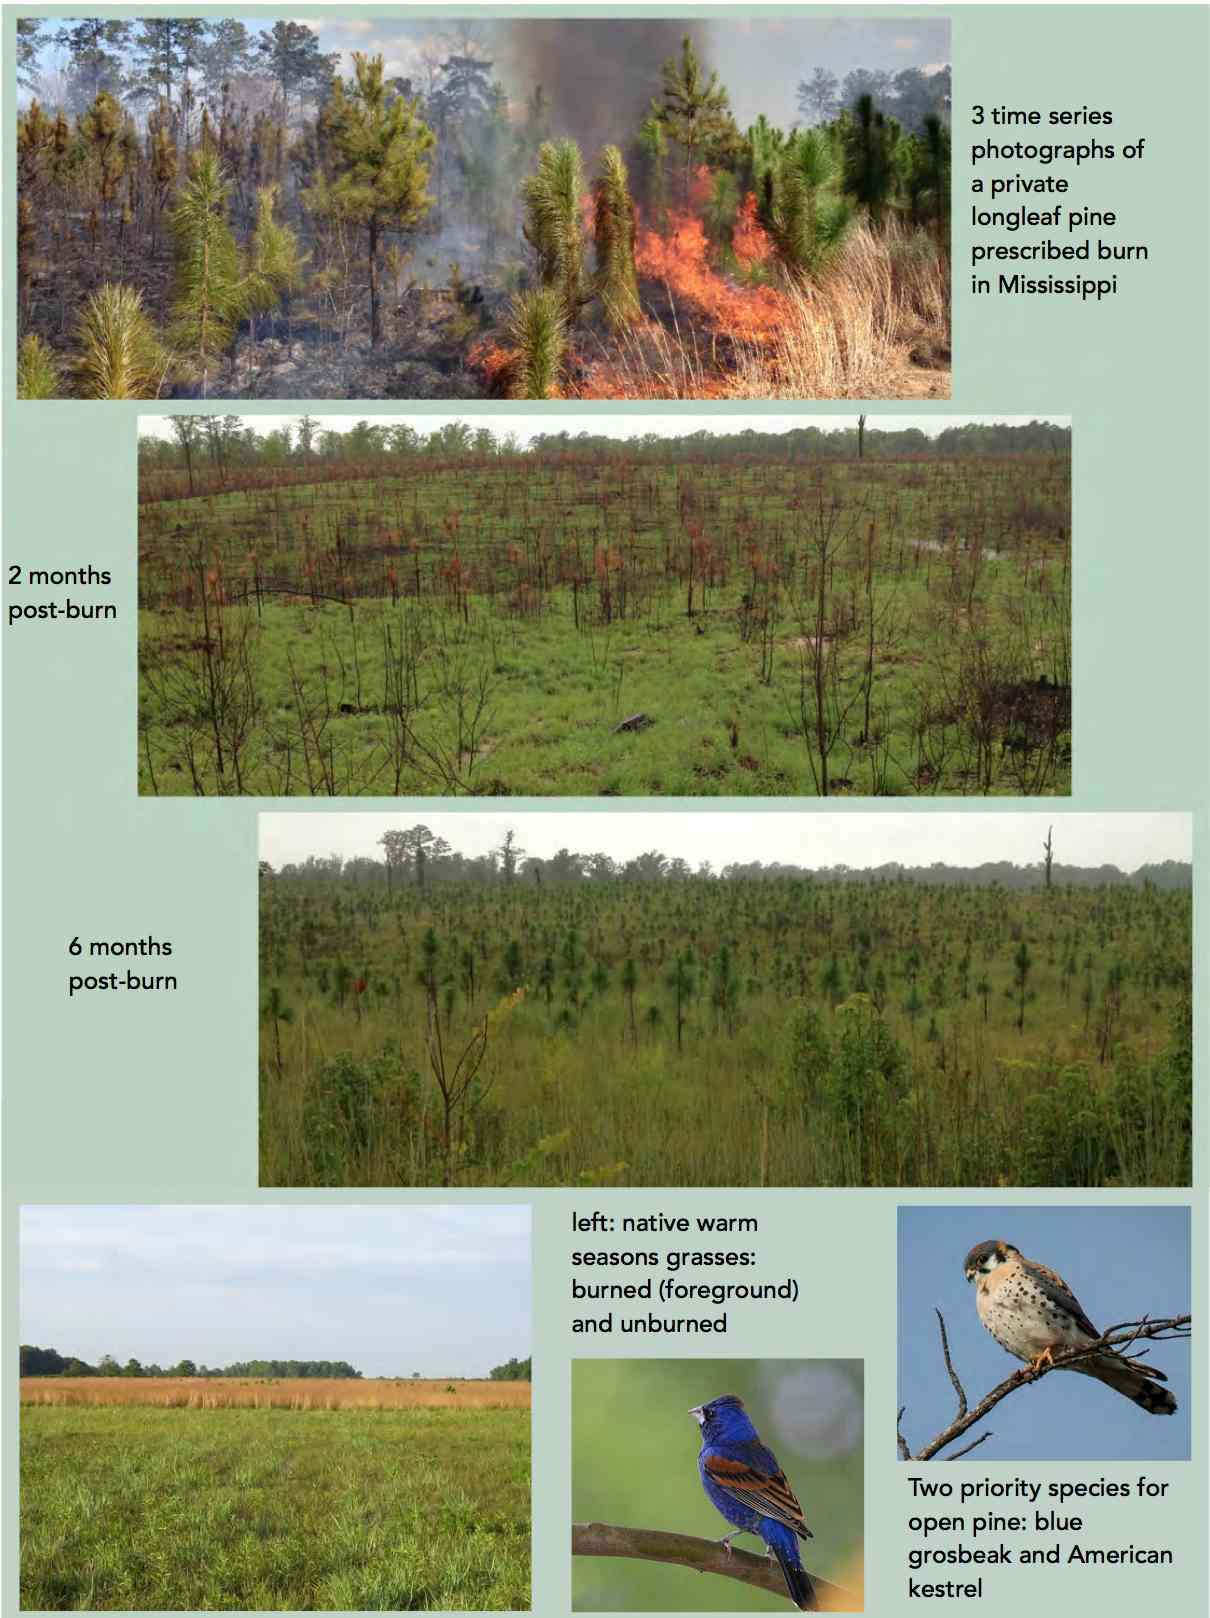 A Burning Issue: Prescribed Fire and Fire-adapted Habitats of the East Gulf Coastal Plain